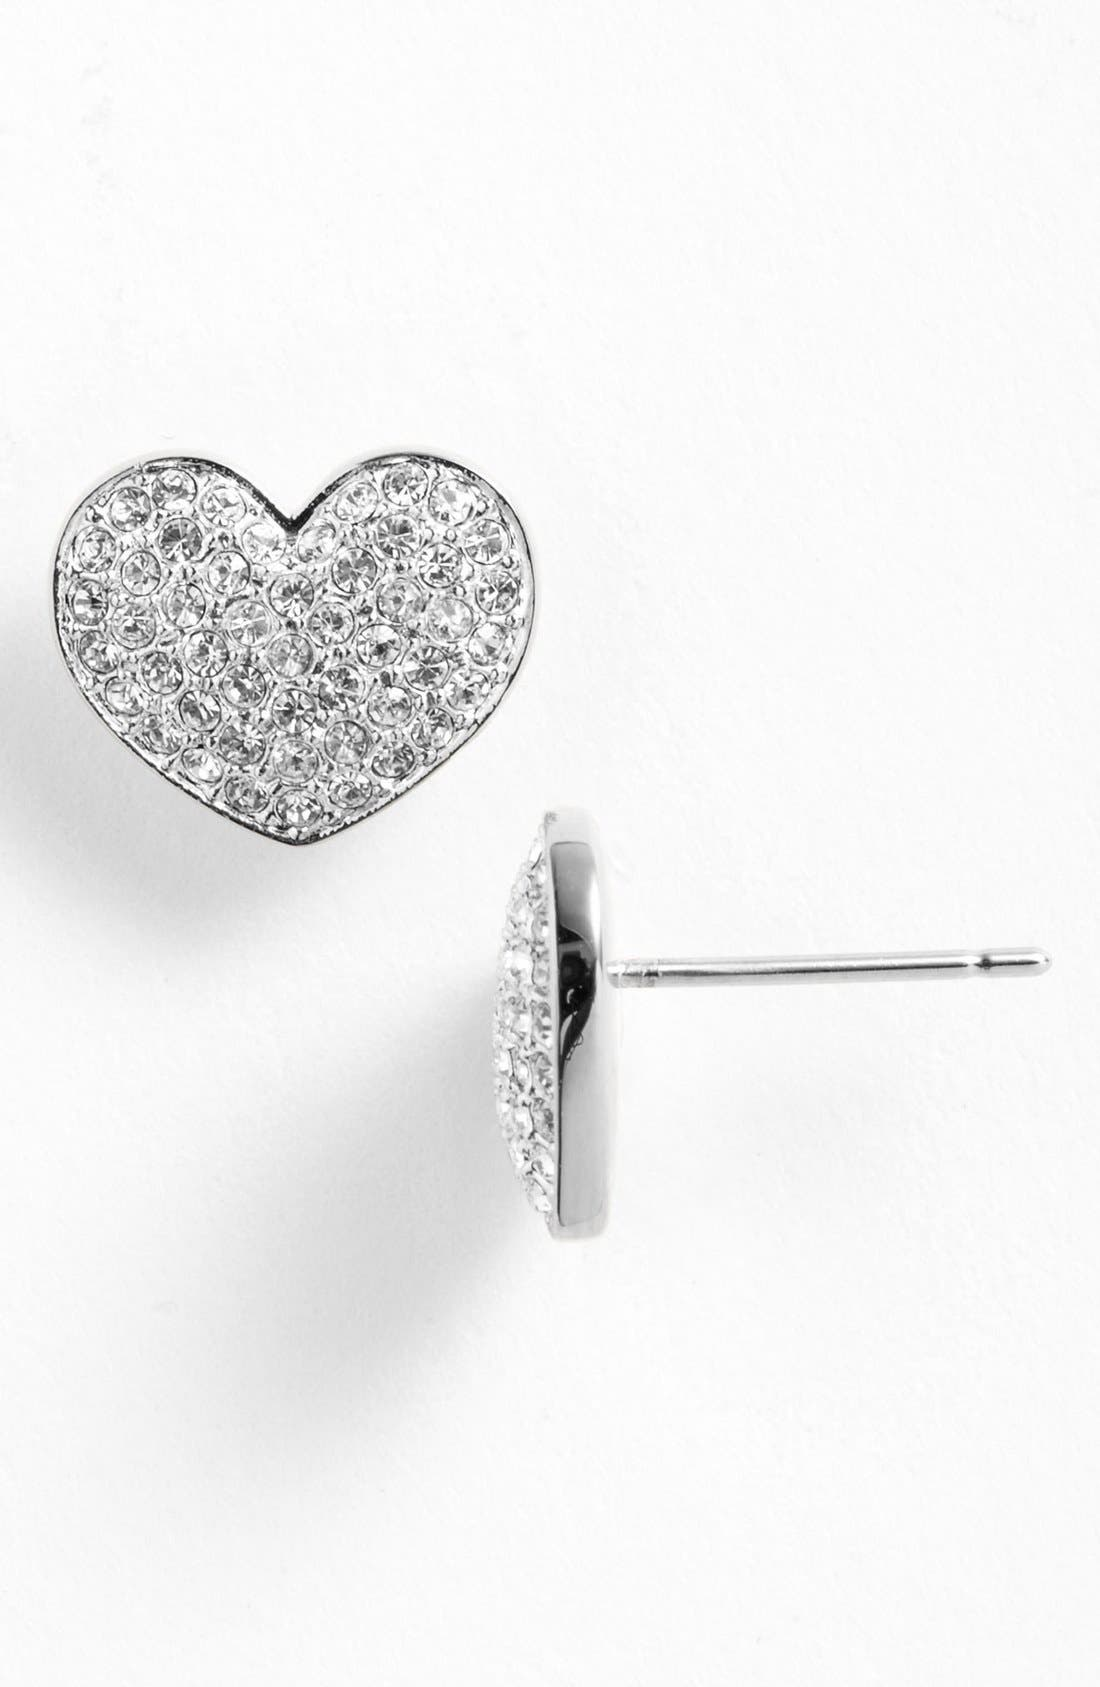 Alternate Image 1 Selected - Nadri 'Charmers' Pavé Symbol Stud Earrings (Nordstrom Exclusive)